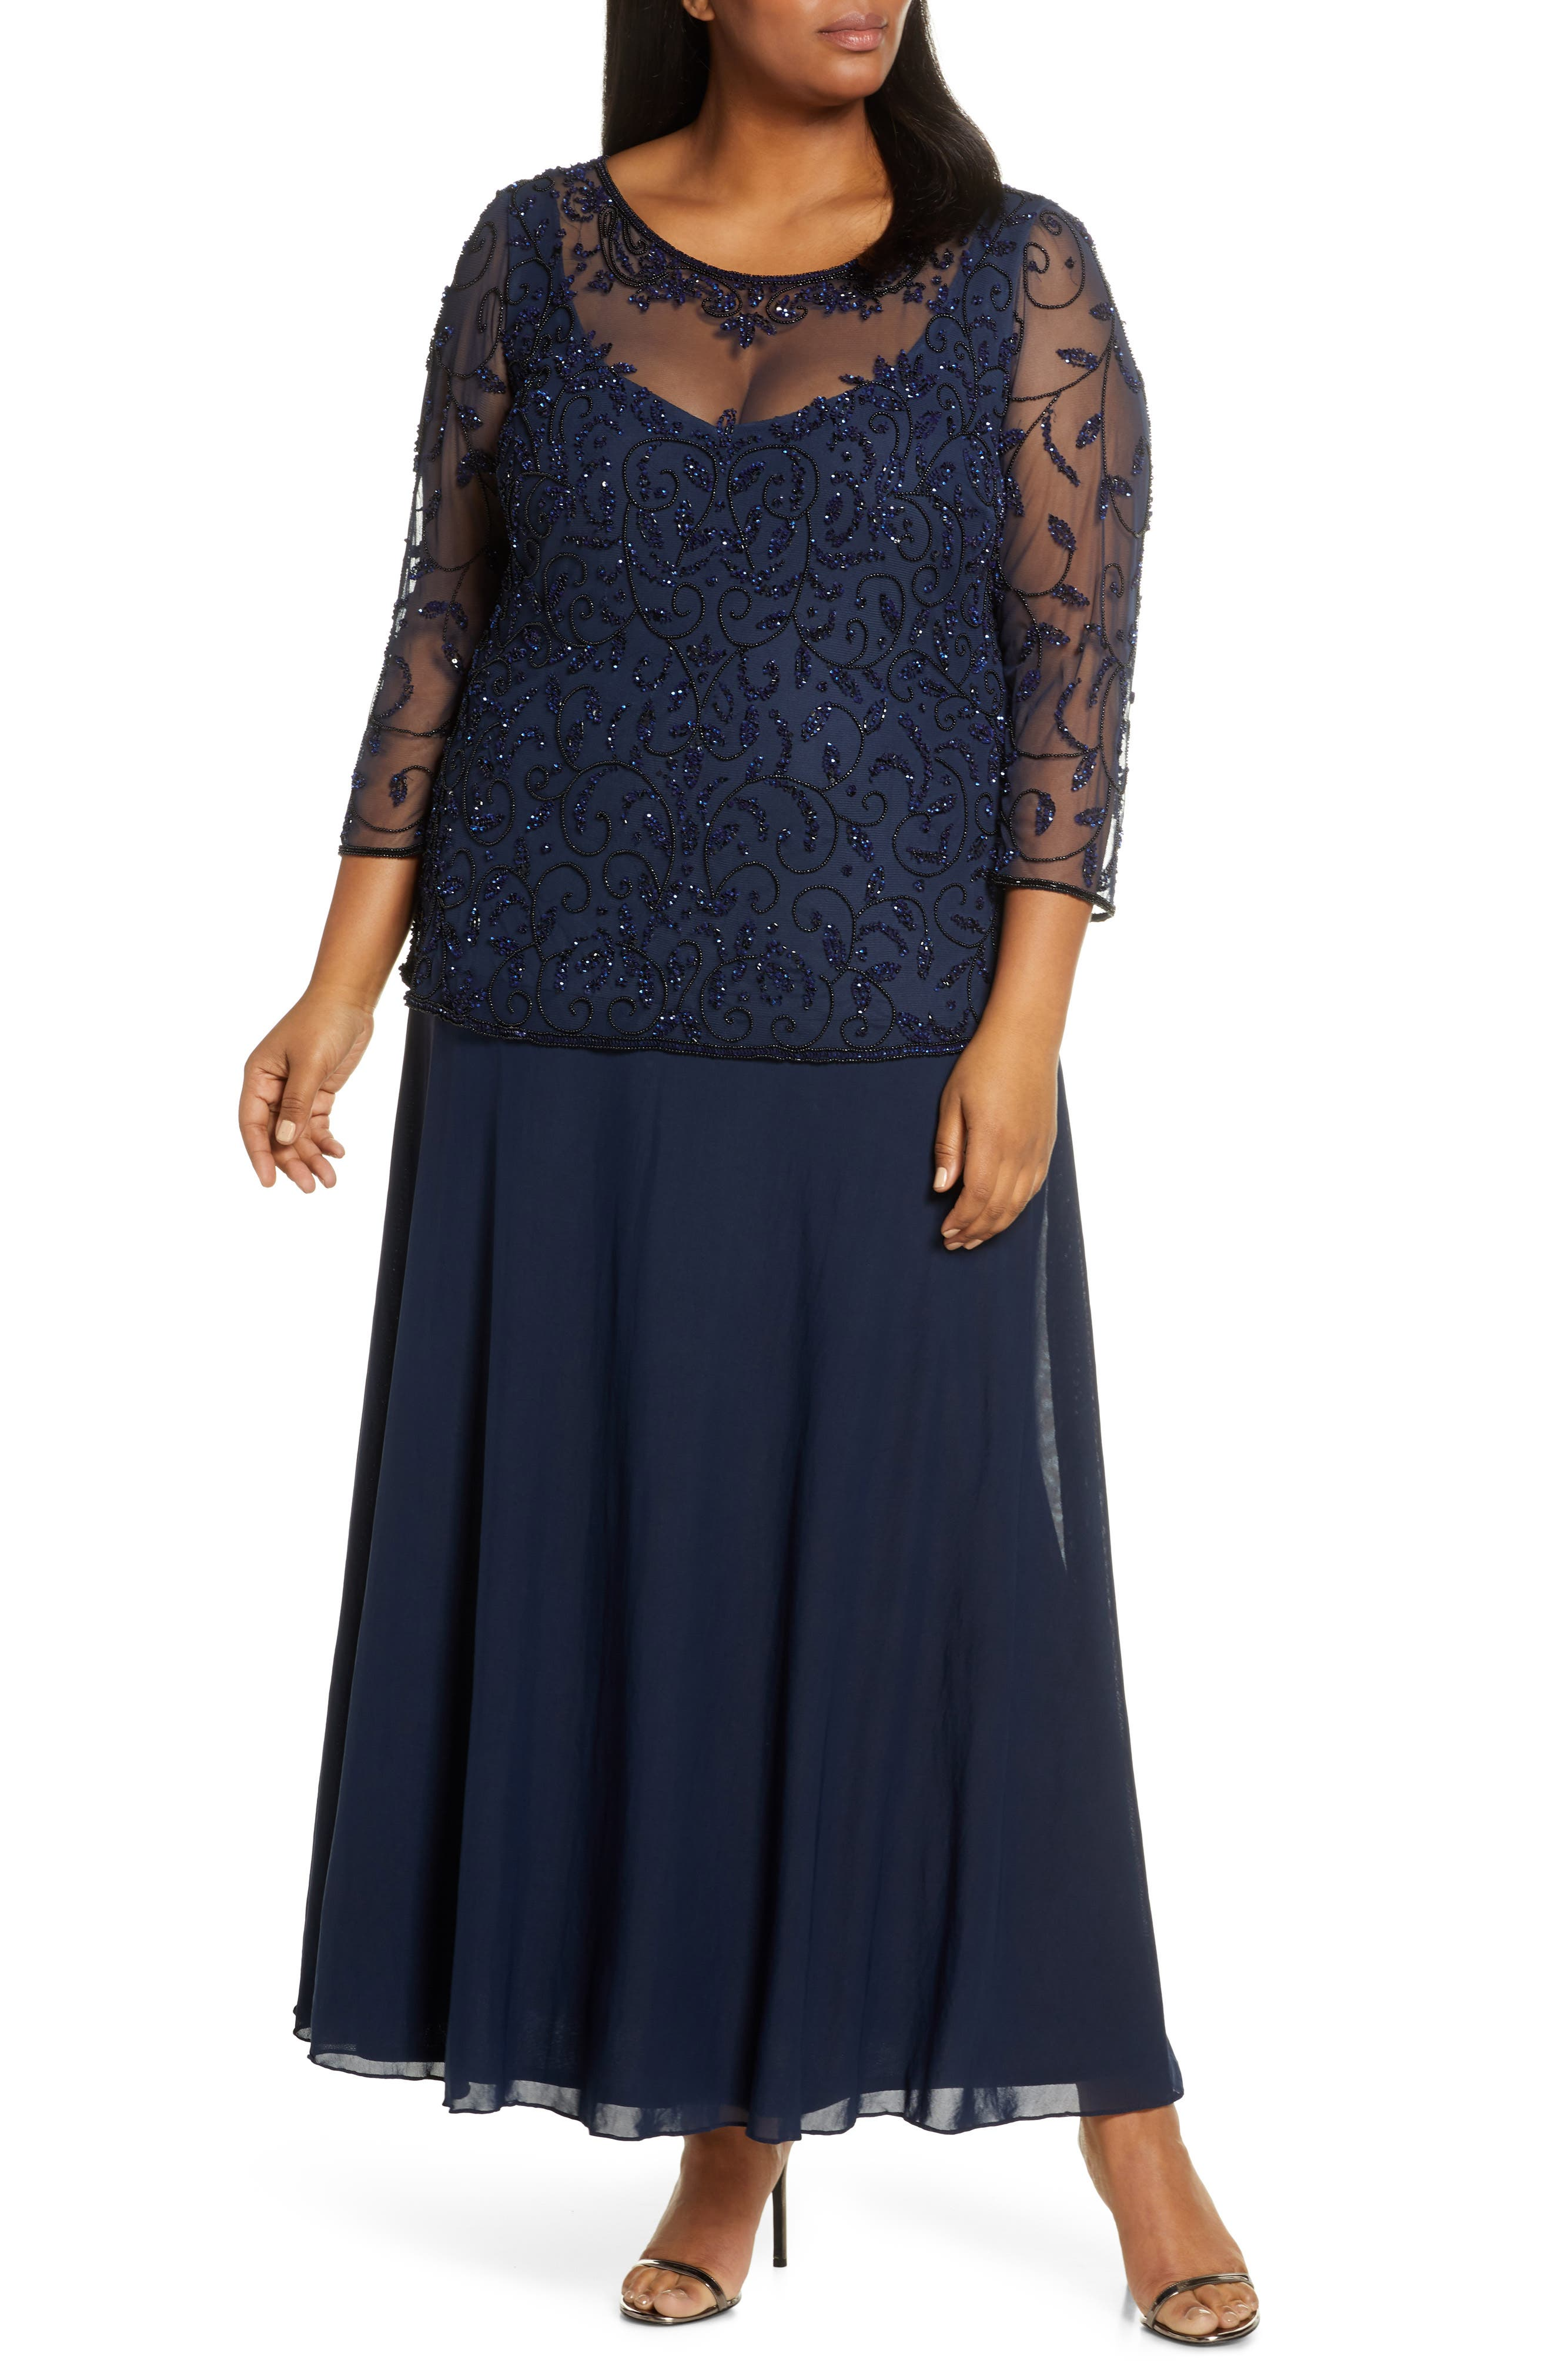 Downton Abbey Inspired Dresses Plus Size Womens Pissaro Nights Beaded Mesh Mock Two-Piece Gown Size 20W - Blue $248.00 AT vintagedancer.com